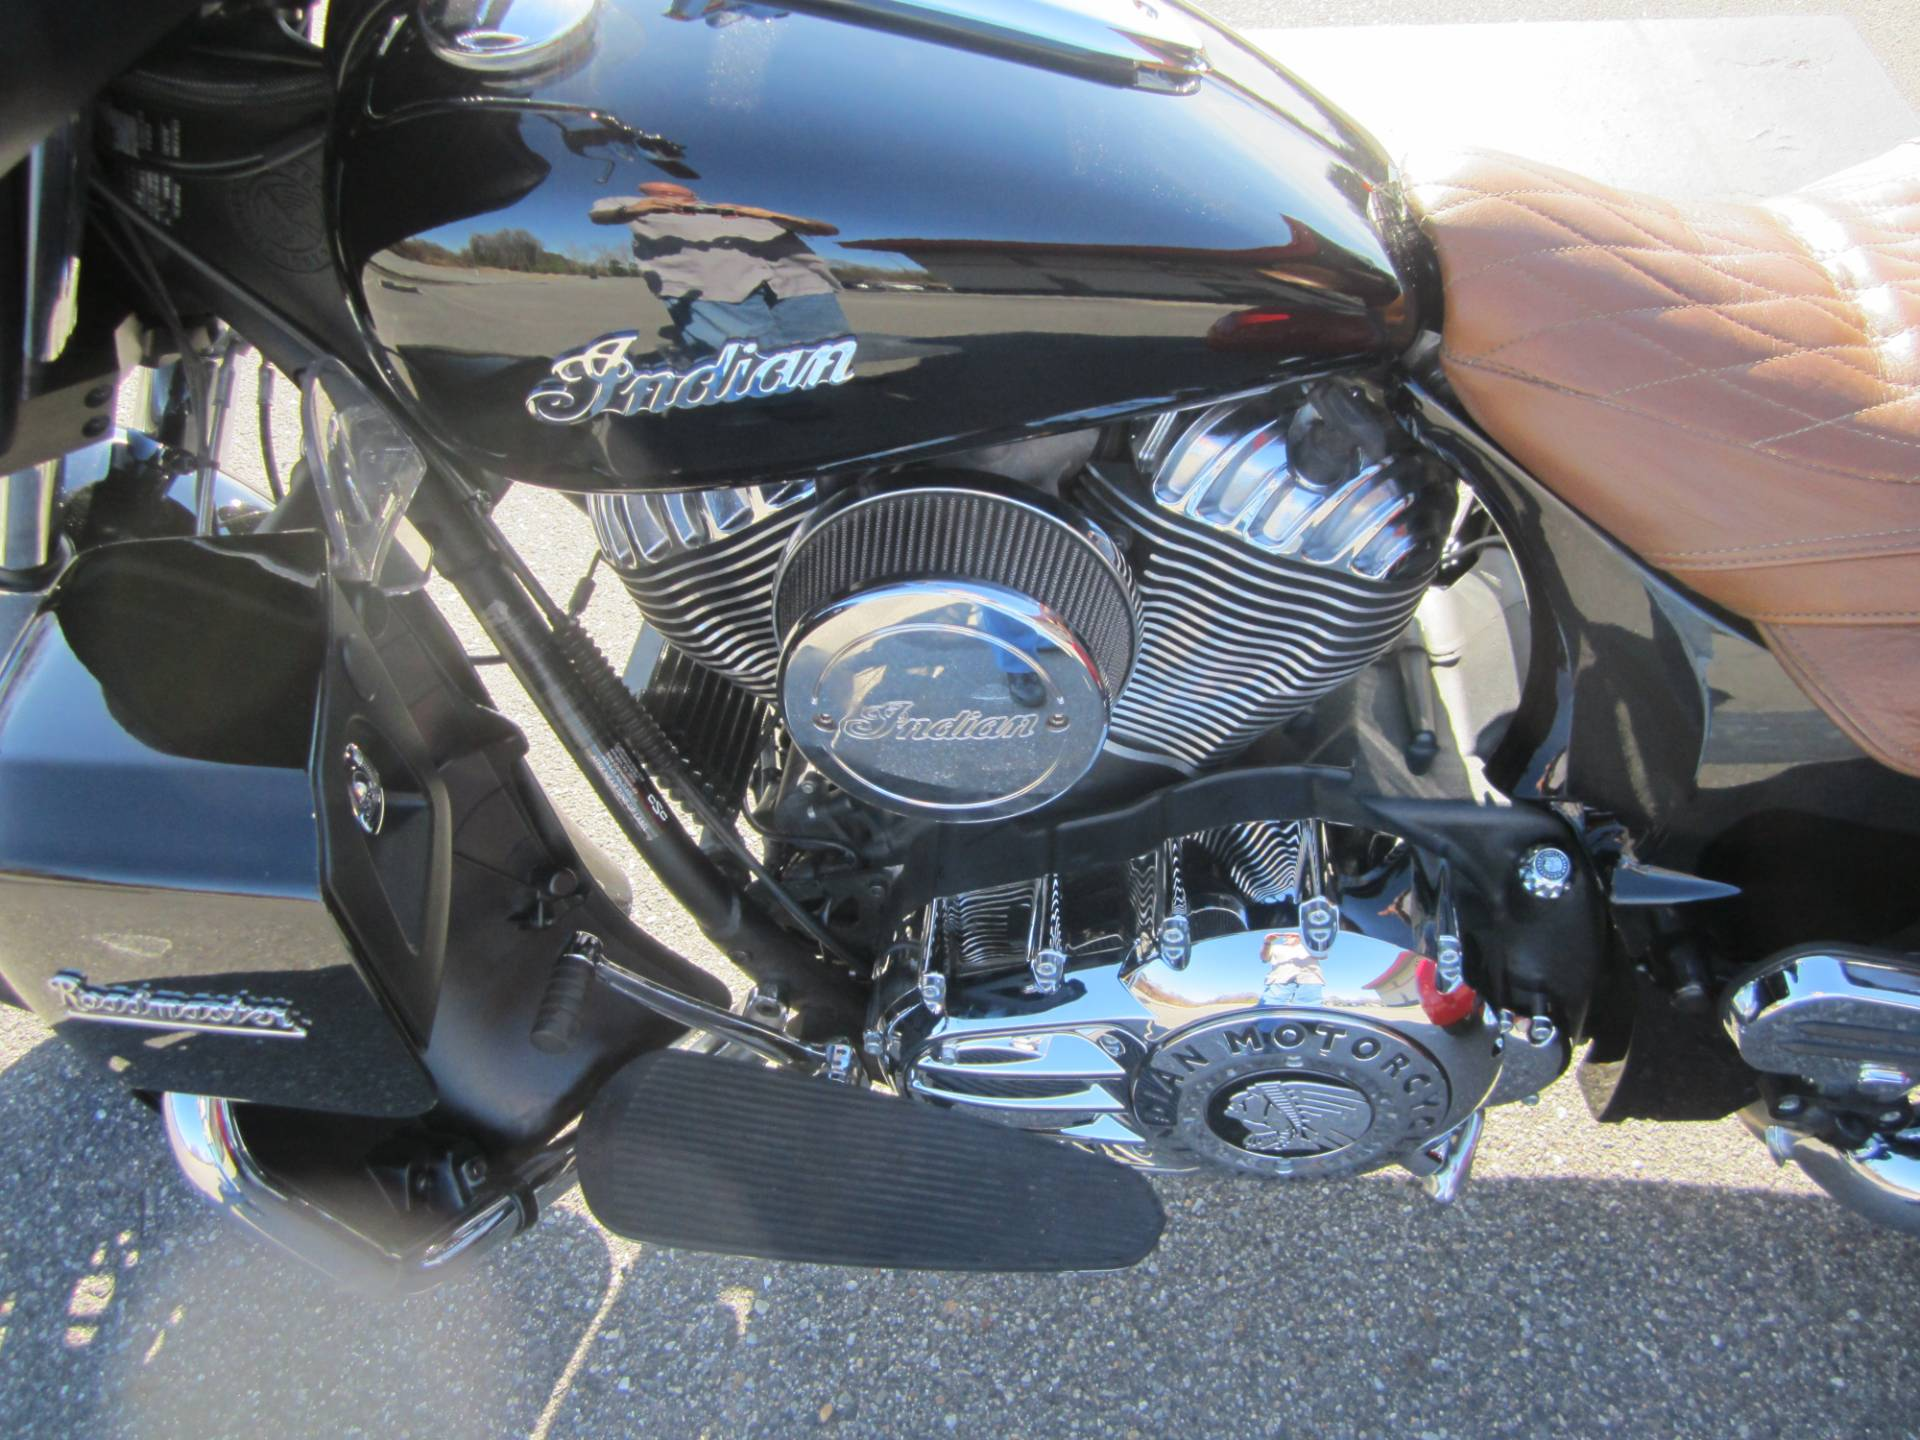 2015 Indian Roadmaster Trike in Lowell, North Carolina